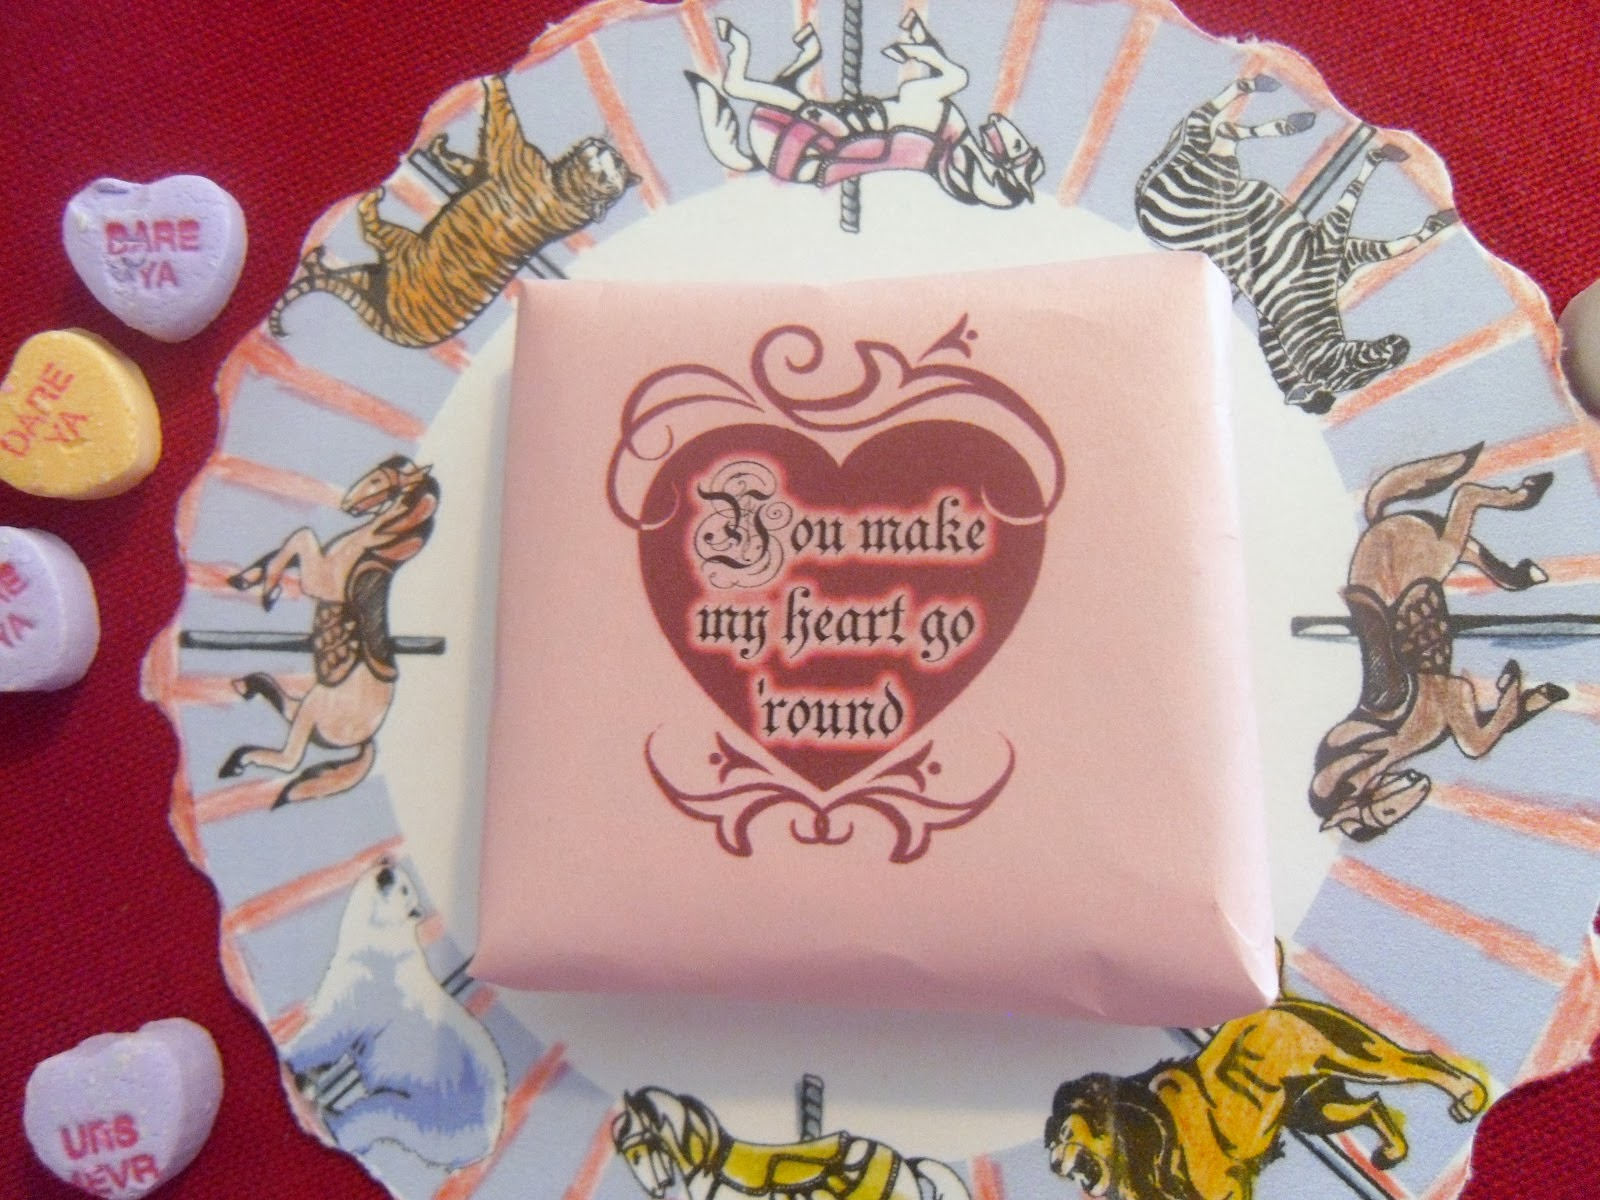 http://hollyshome-hollyshome.blogspot.com/2012/01/carrousel-valentine-with-resees-peanut.html